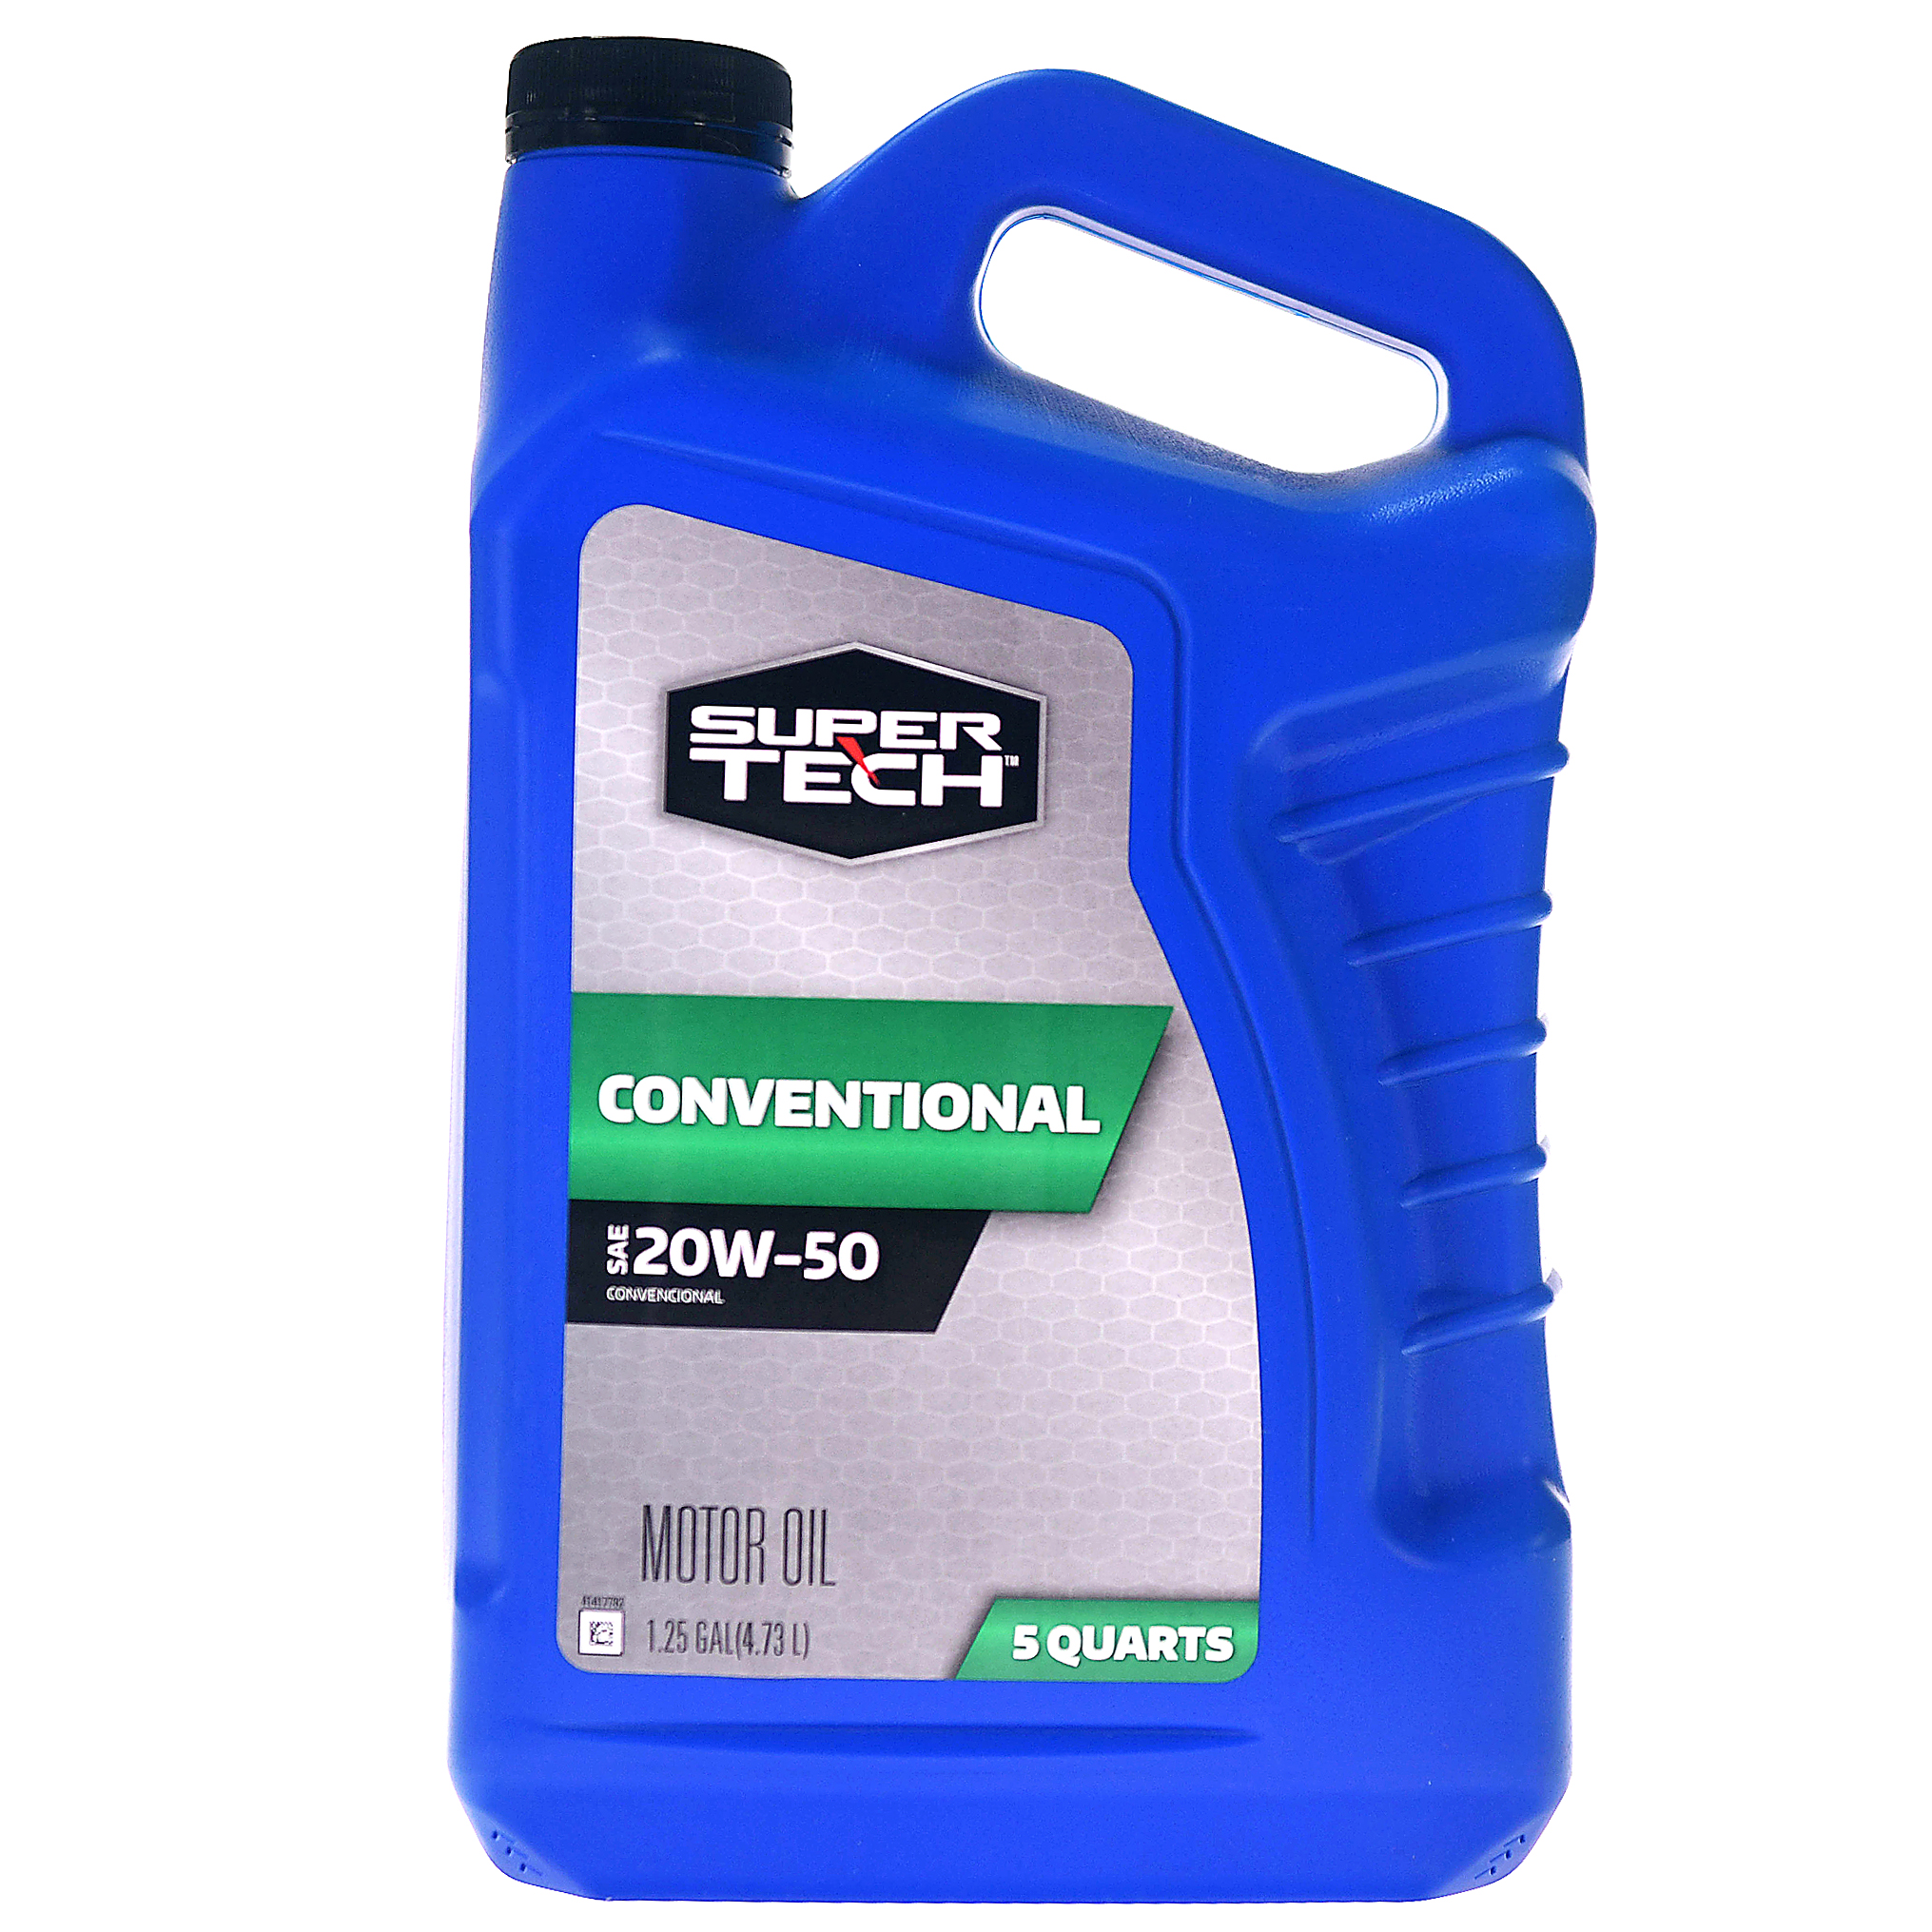 (3 Pack) SuperTech Conventional Motor Oil, 20W-50 Weight, 5 Quarts